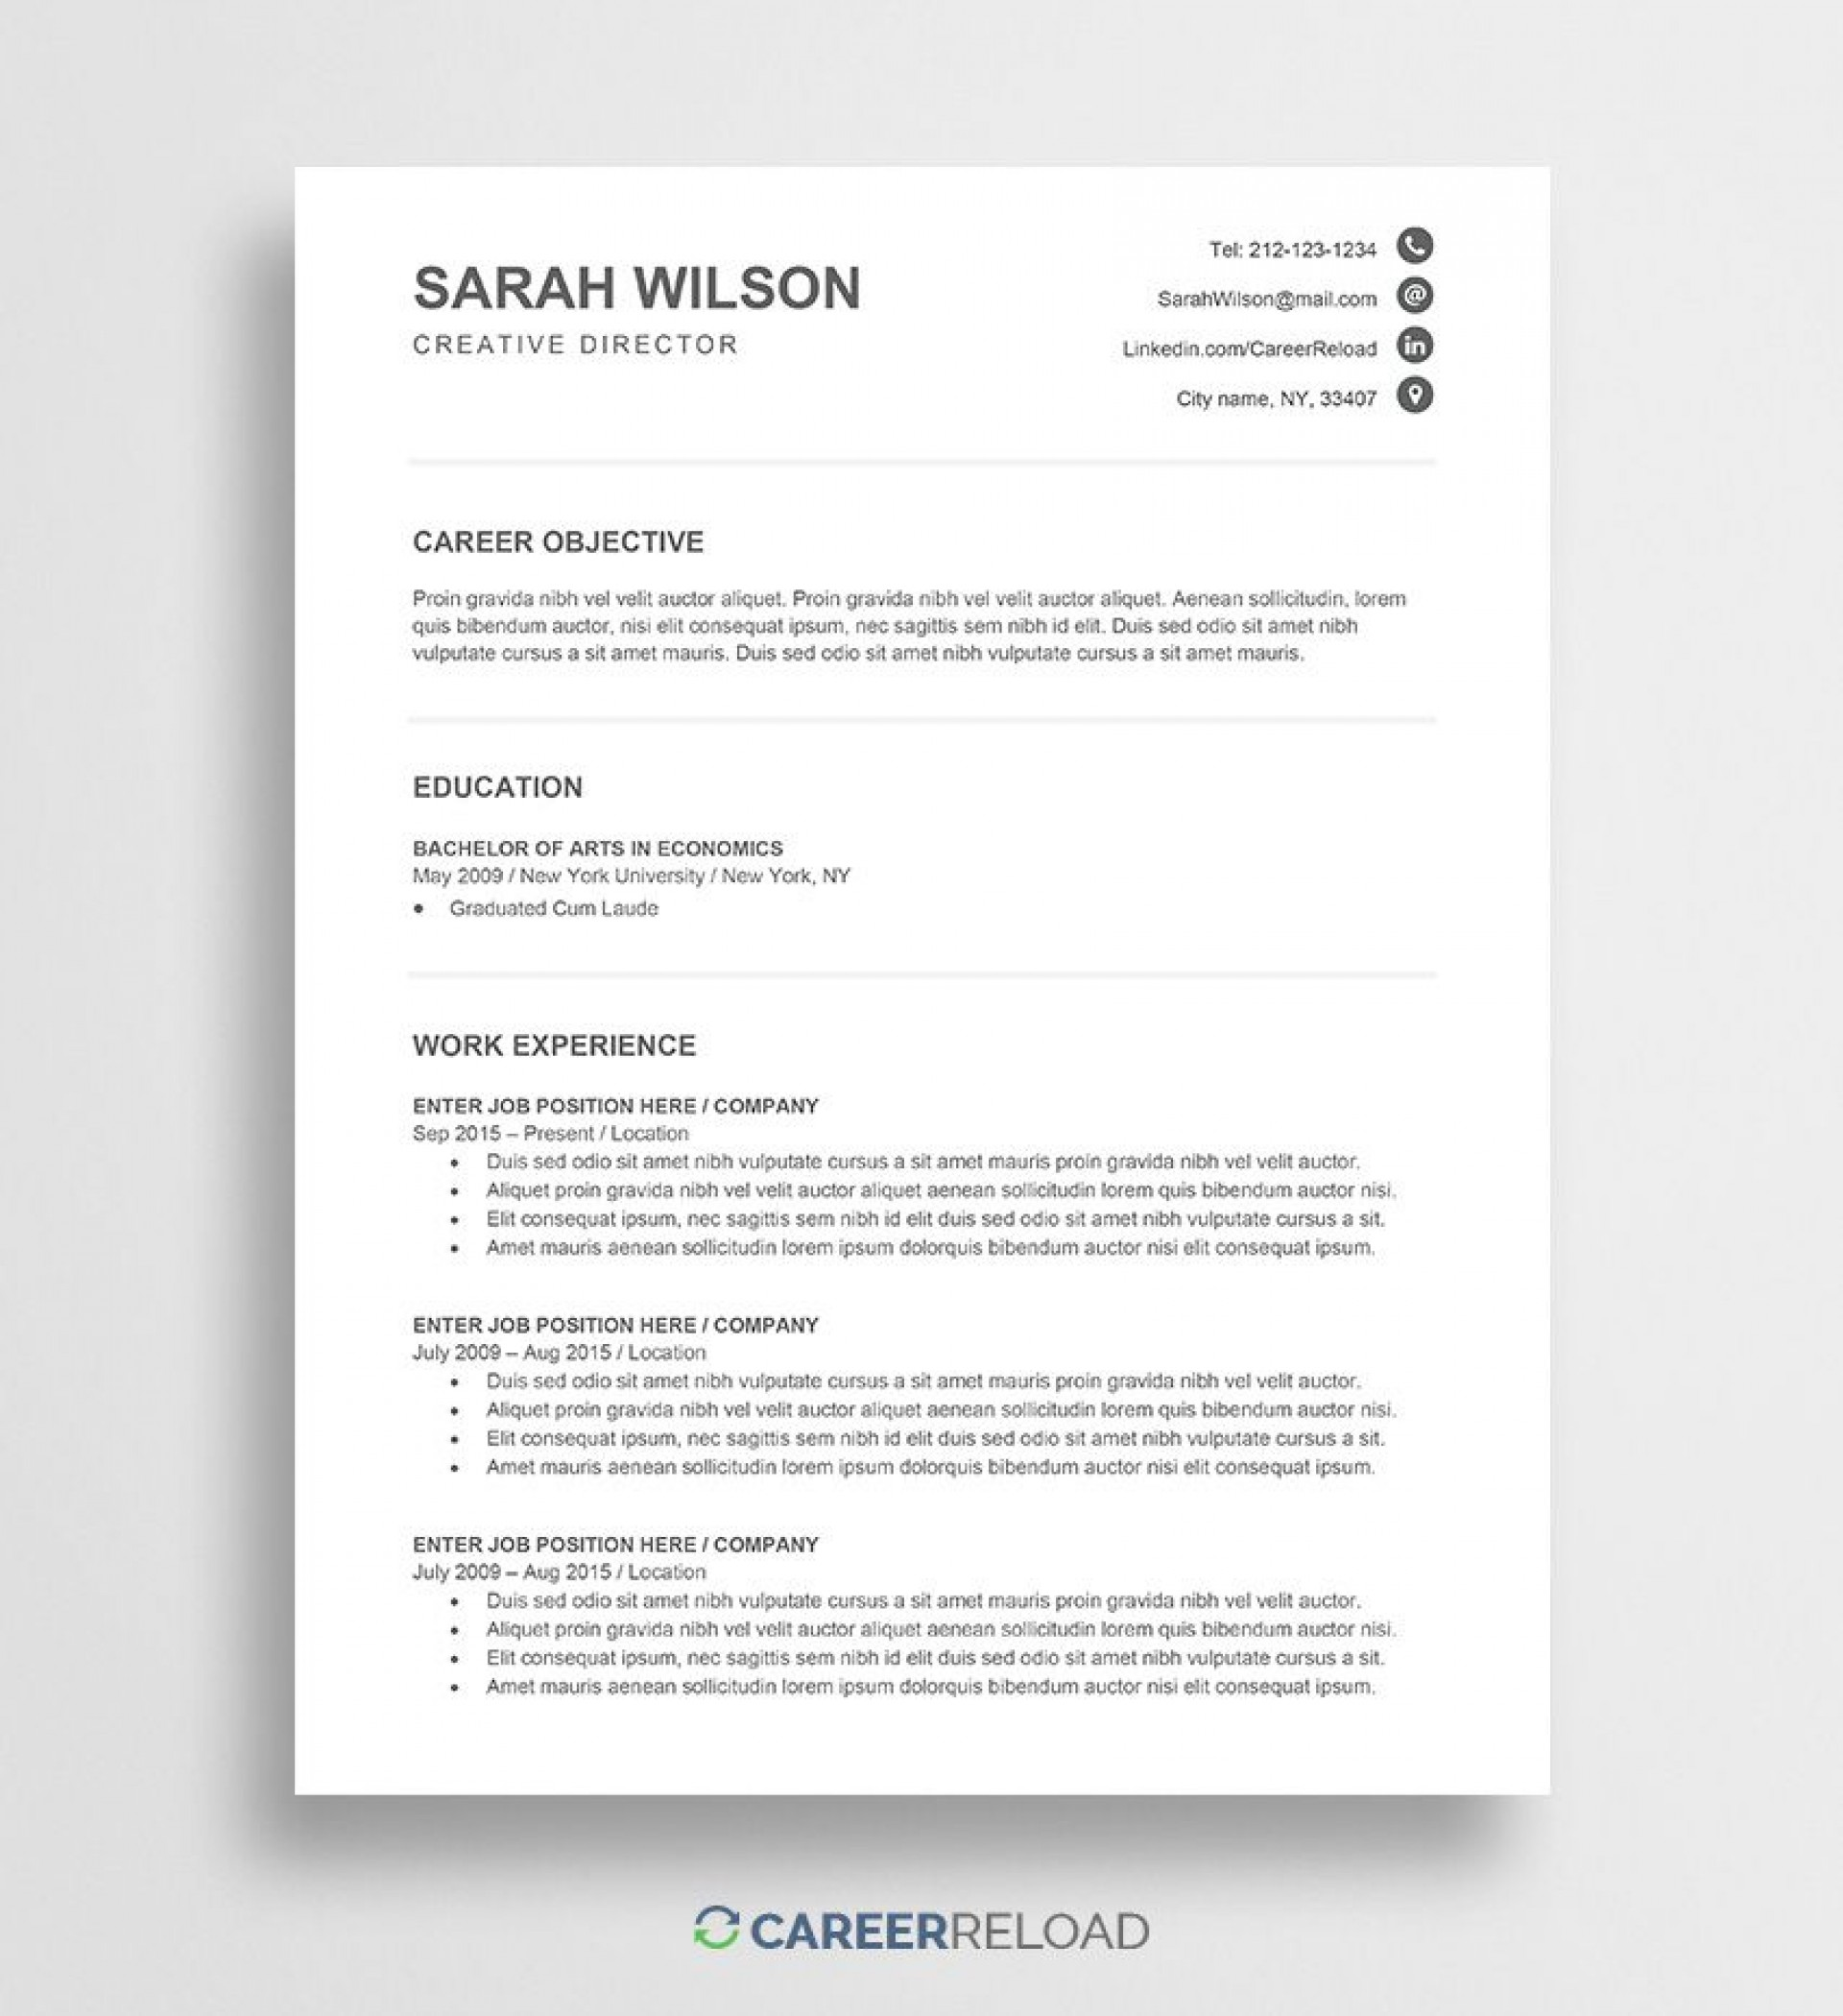 005 Excellent Entry Level Resume Template Word Download Design 1920